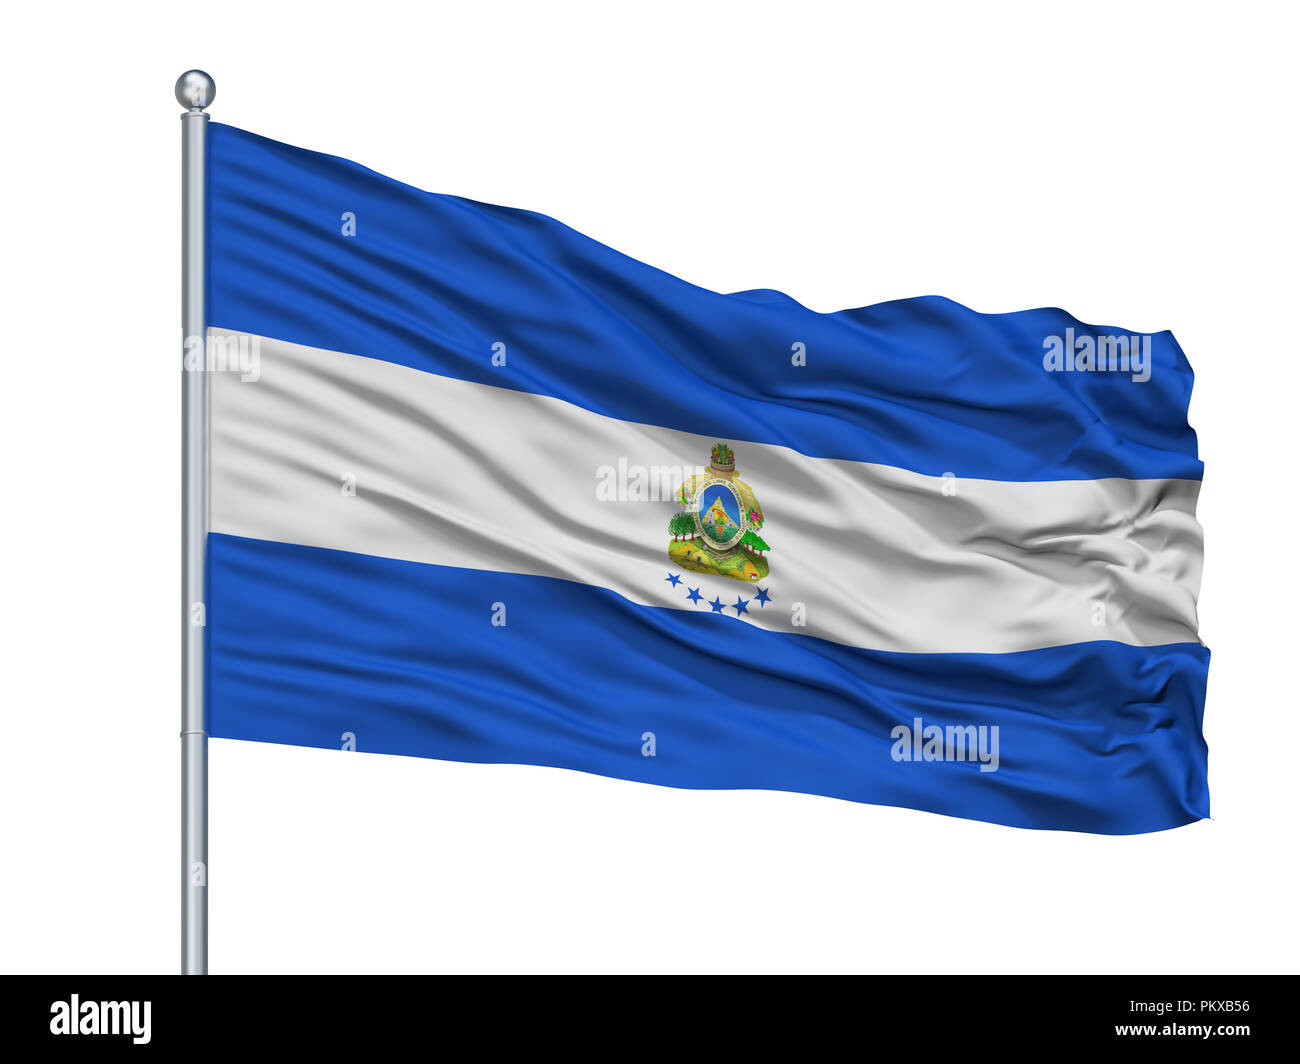 Honduras Naval Ensign Flag On Flagpole, Isolated On White Background, 3D Rendering Stock Photo